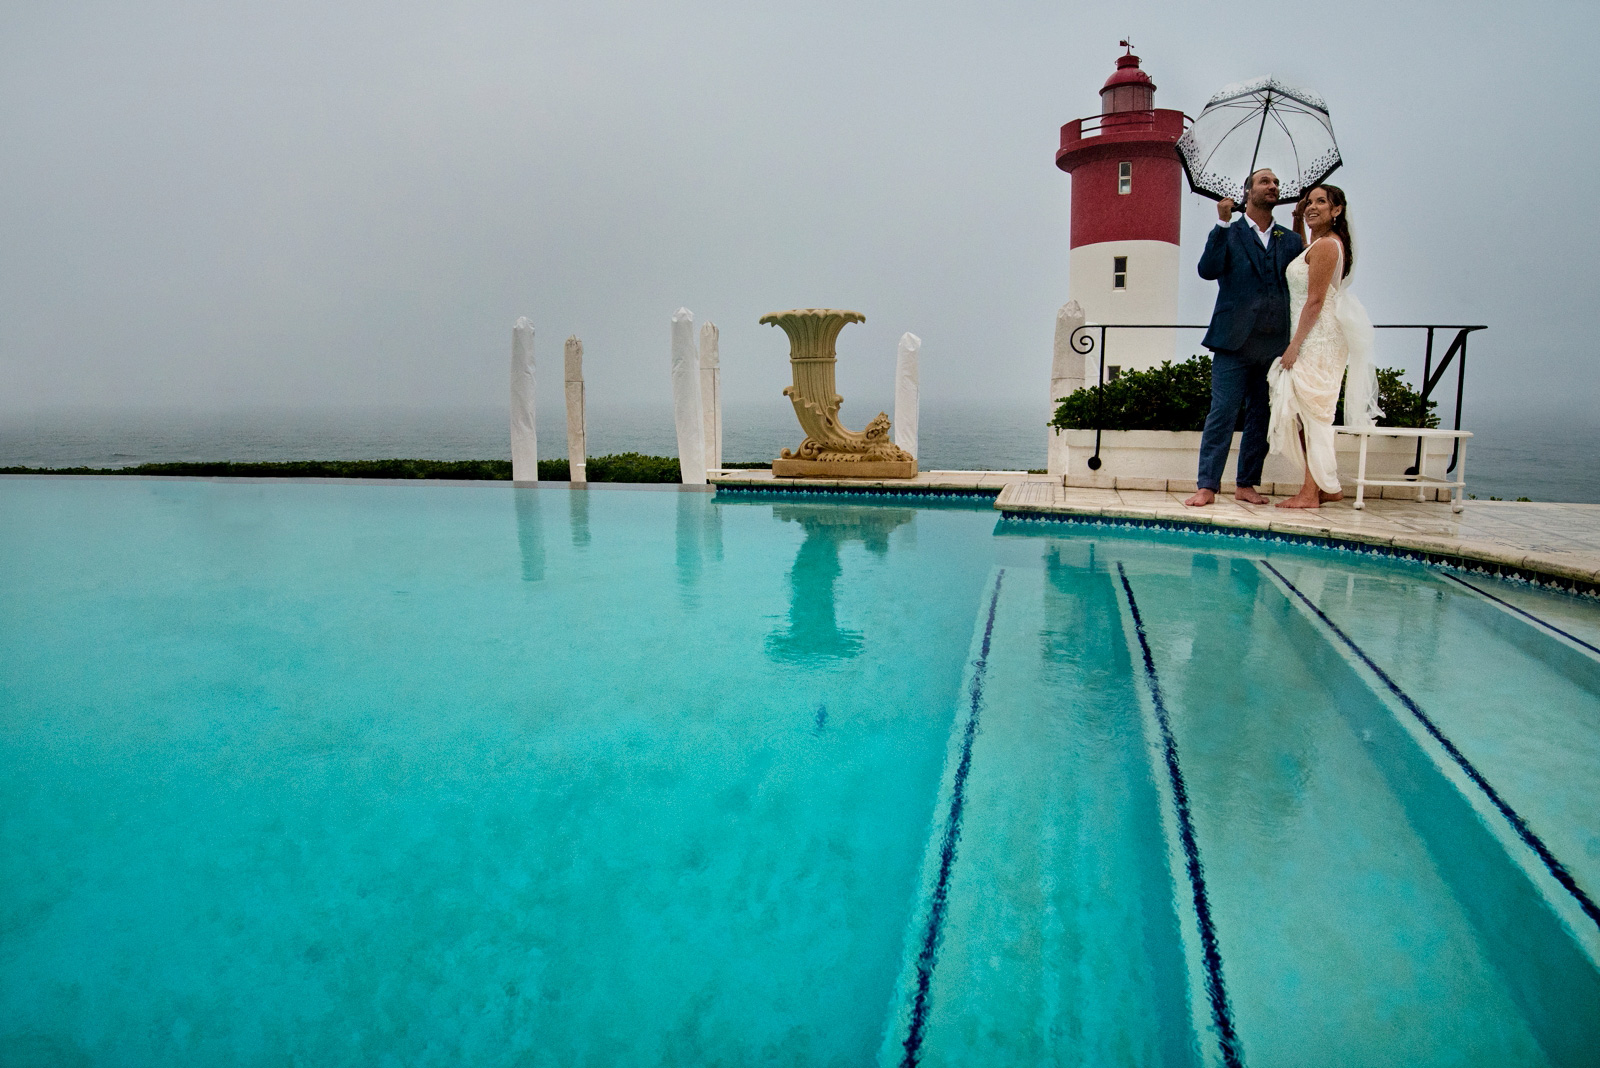 Rainy-Beach-Oyster-Box-Wedding-Top-South-African-Wedding-Photographer-Jacki-Bruniquel-001-1657